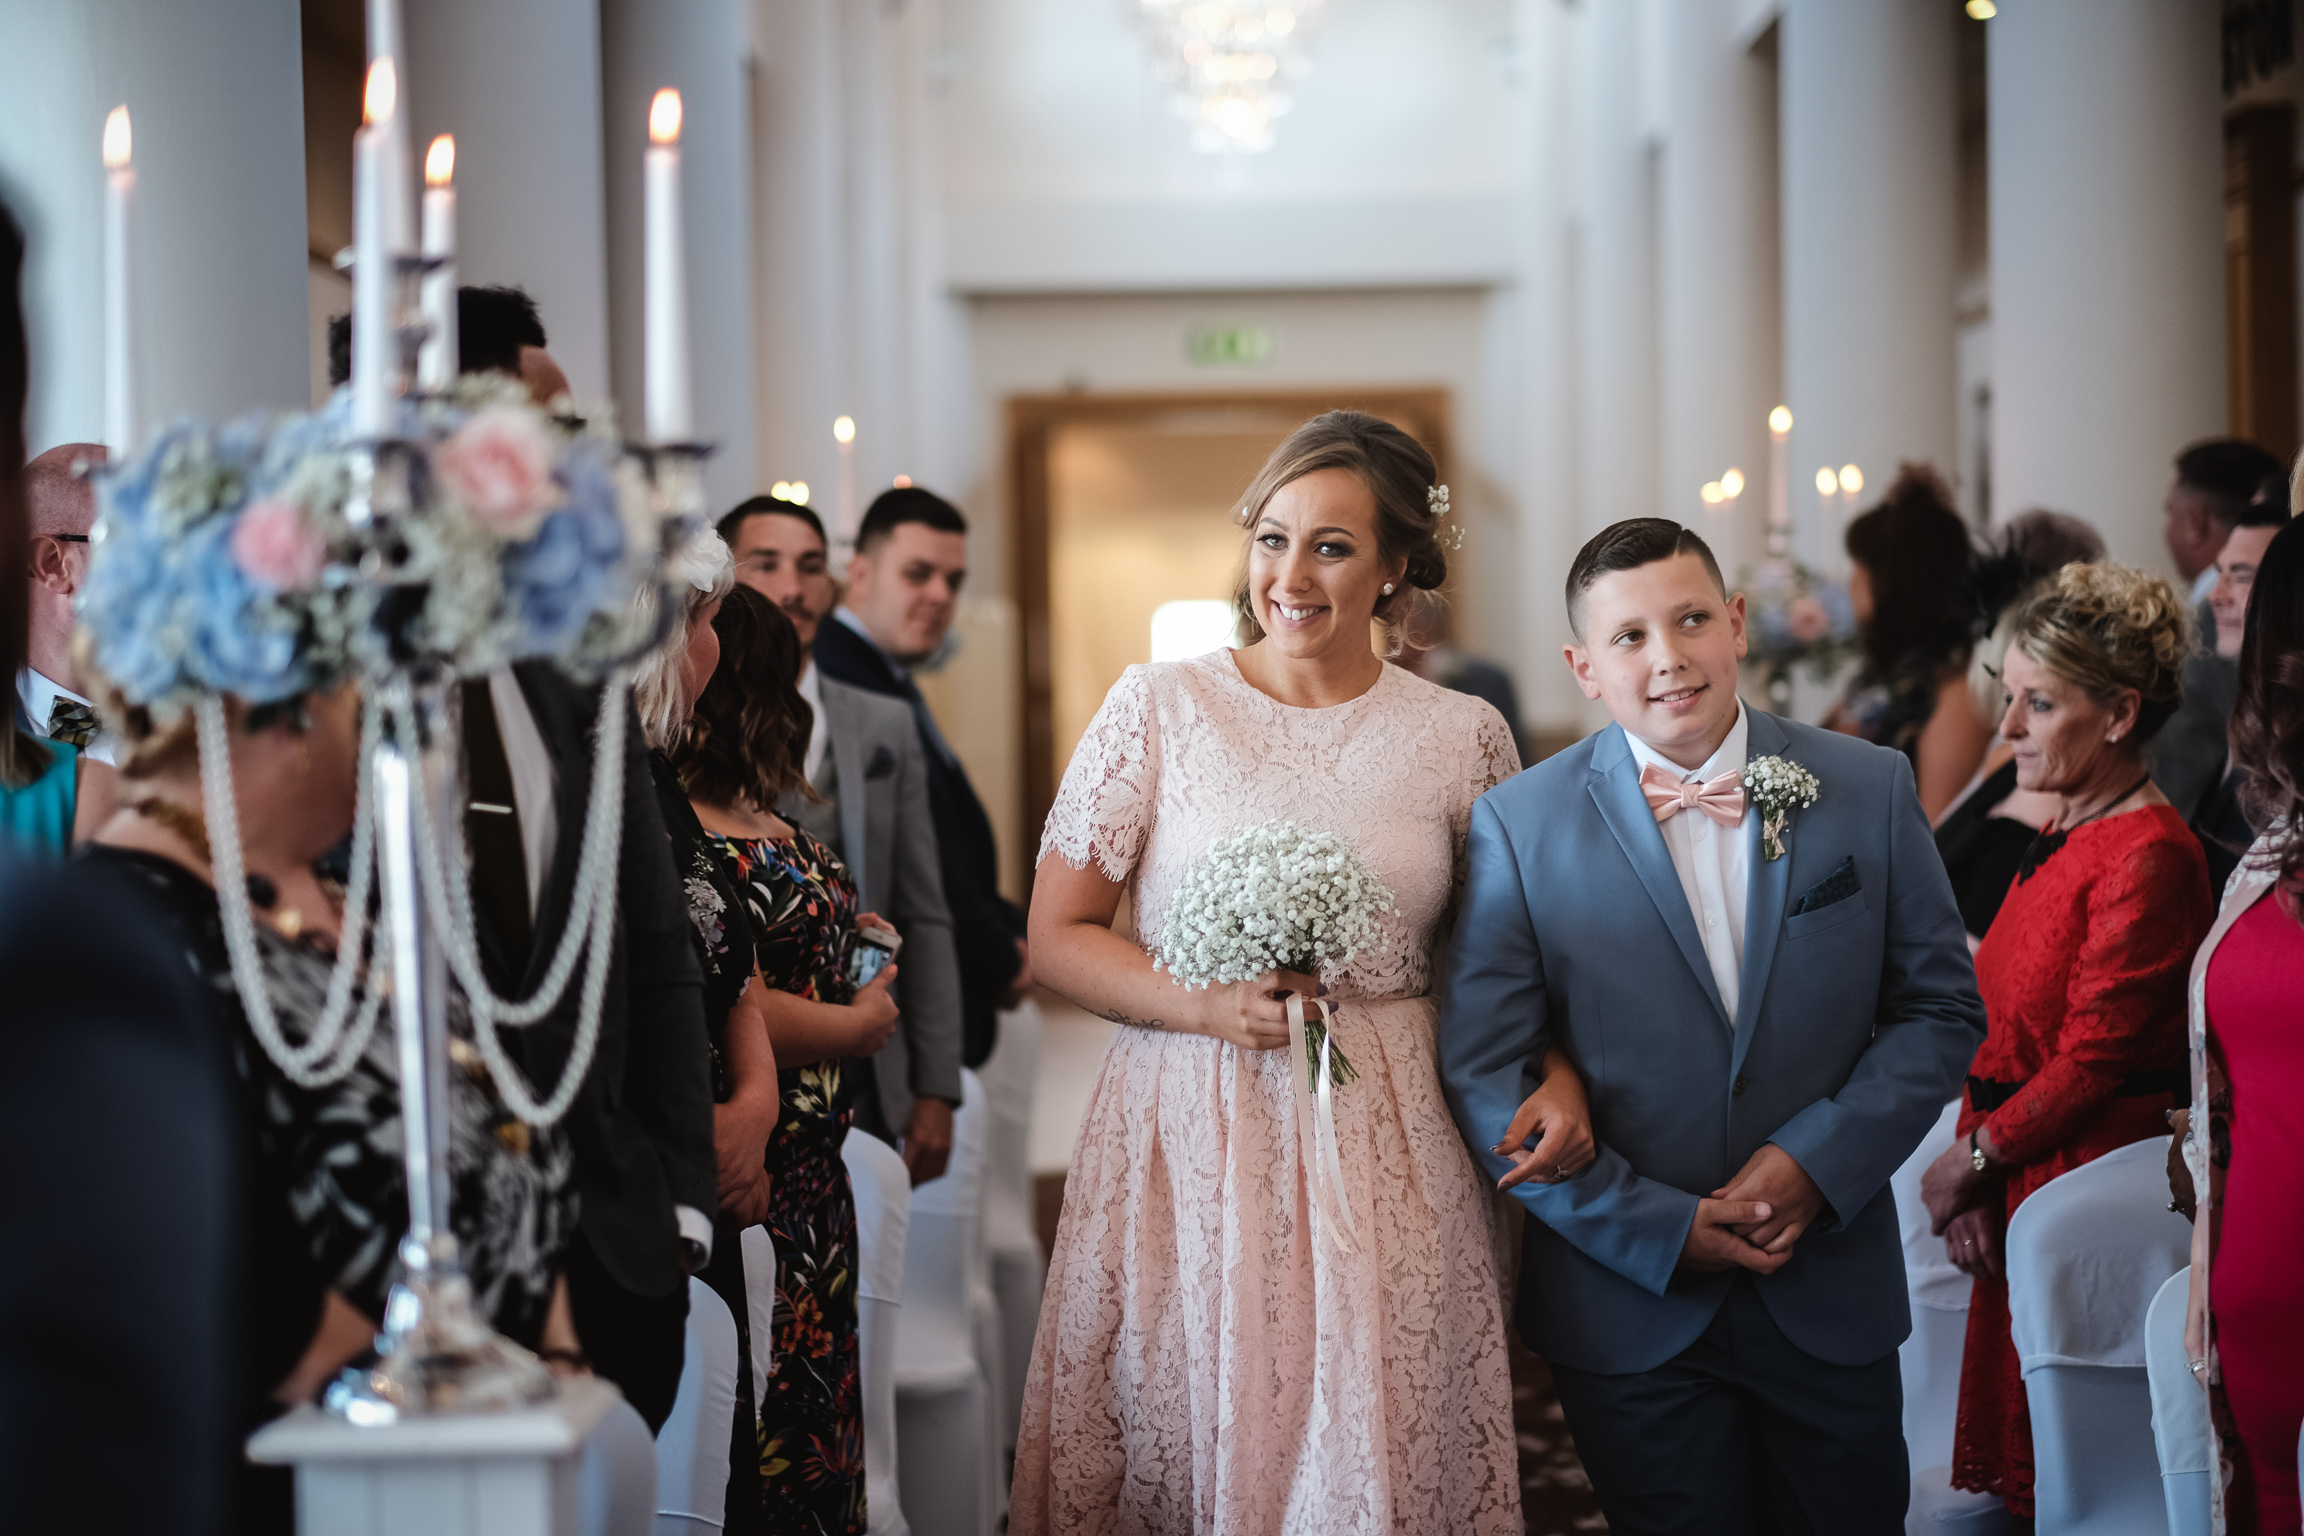 Low wood bay wedding photographer in widermere documentry wedding photography north west cumbria (37 of 131).jpg